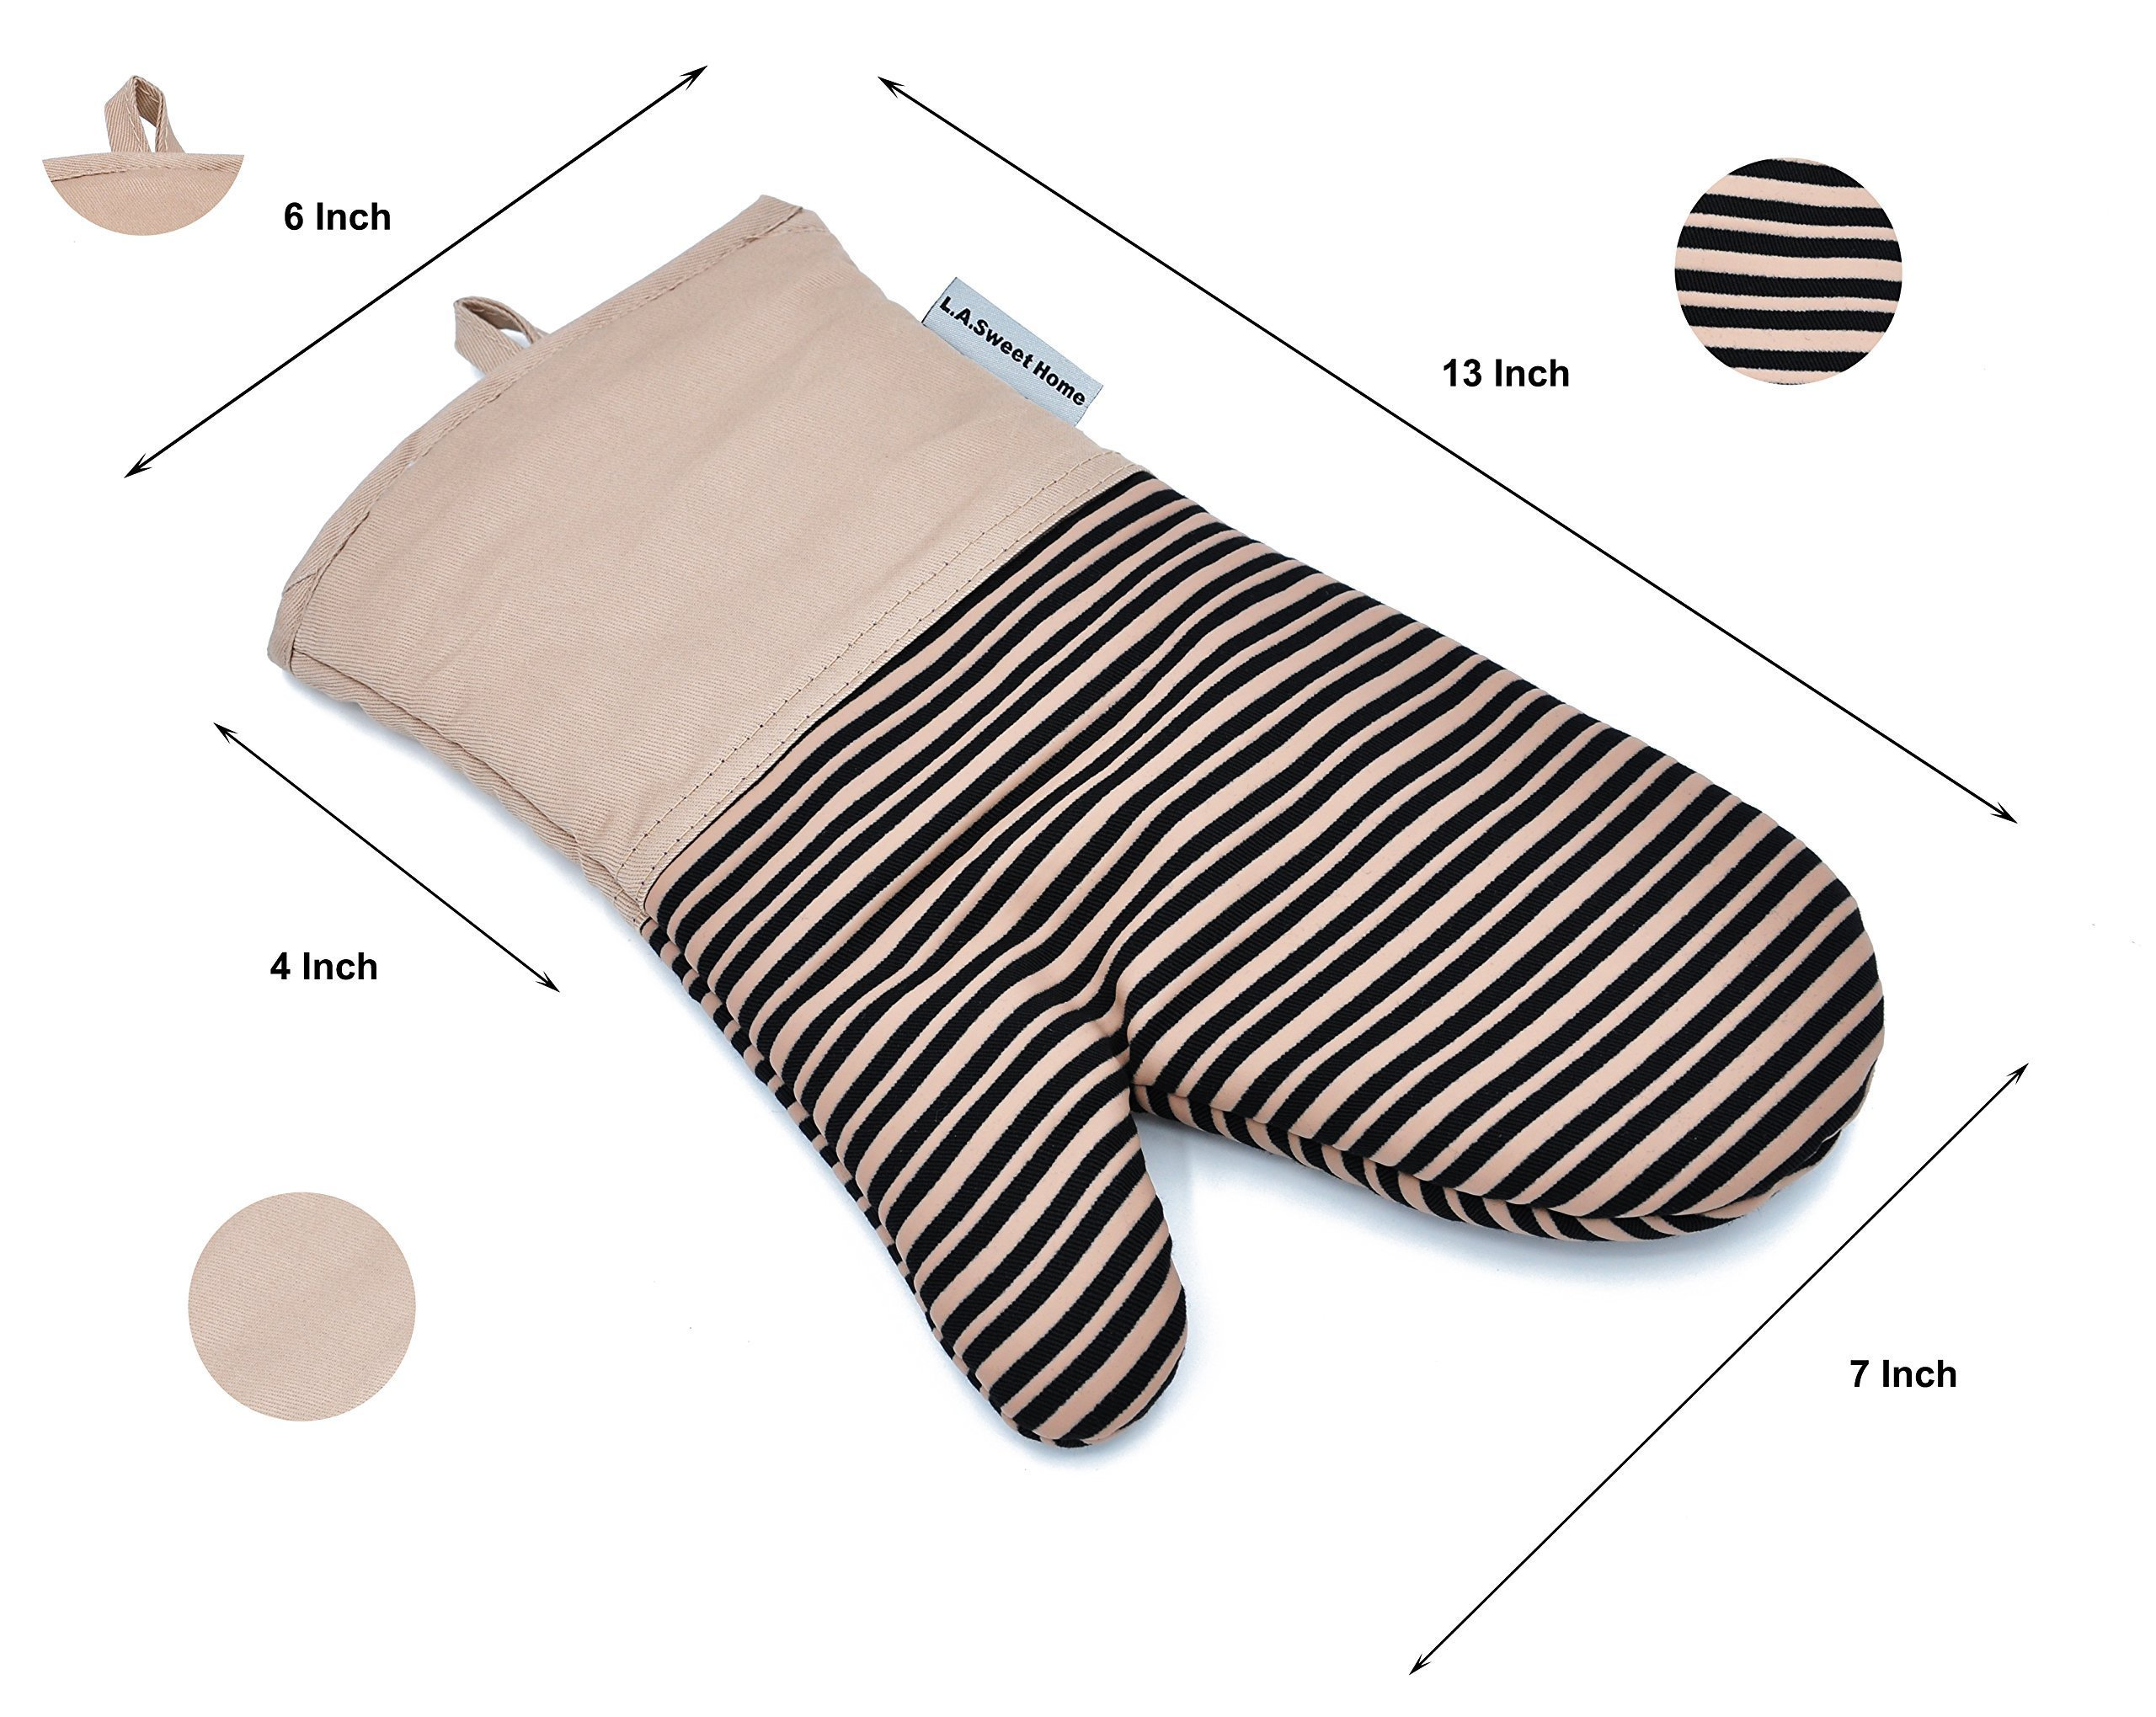 Silicone Oven Mitts 464 F Heat Resistant Potholders Striped Pattern Cooking Gloves Non-Slip Grip for Kitchen Oven BBQ Grill Cooking Baking 7x13 inch as Christmas Gift 1 pair (Khaki) by LA Sweet Home